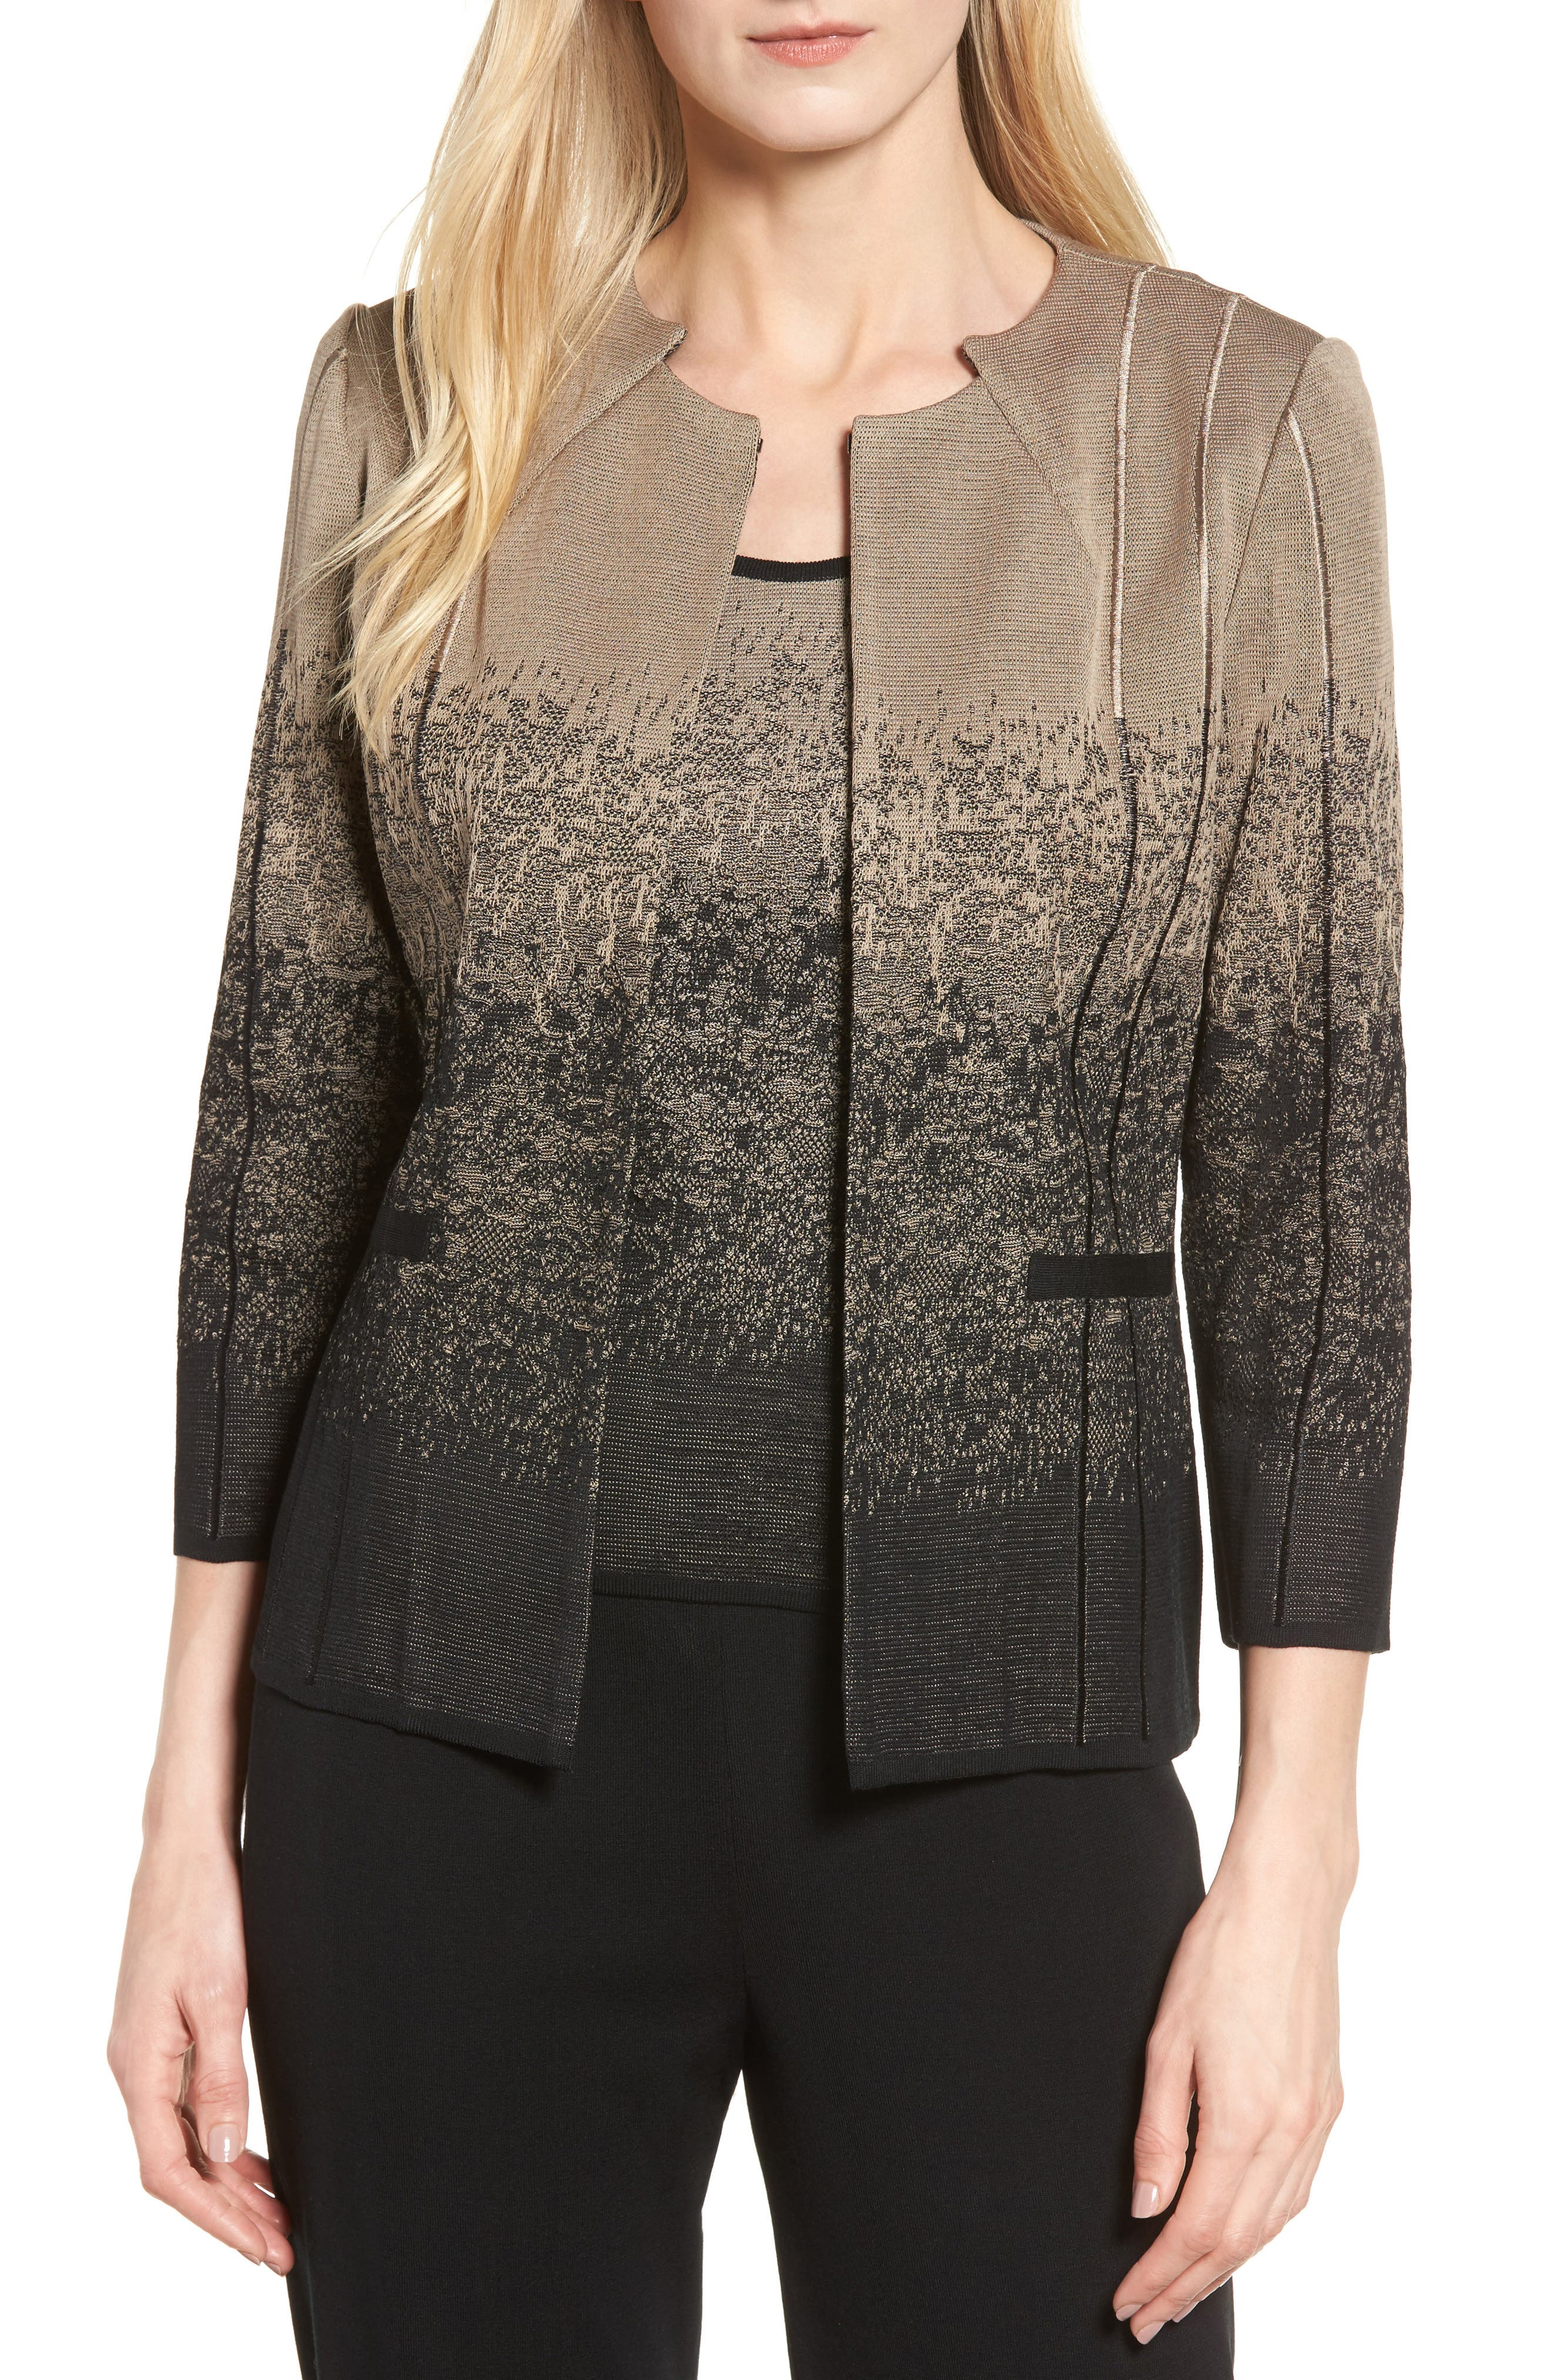 Jacquard Knit Jacket,                             Main thumbnail 1, color,                             250